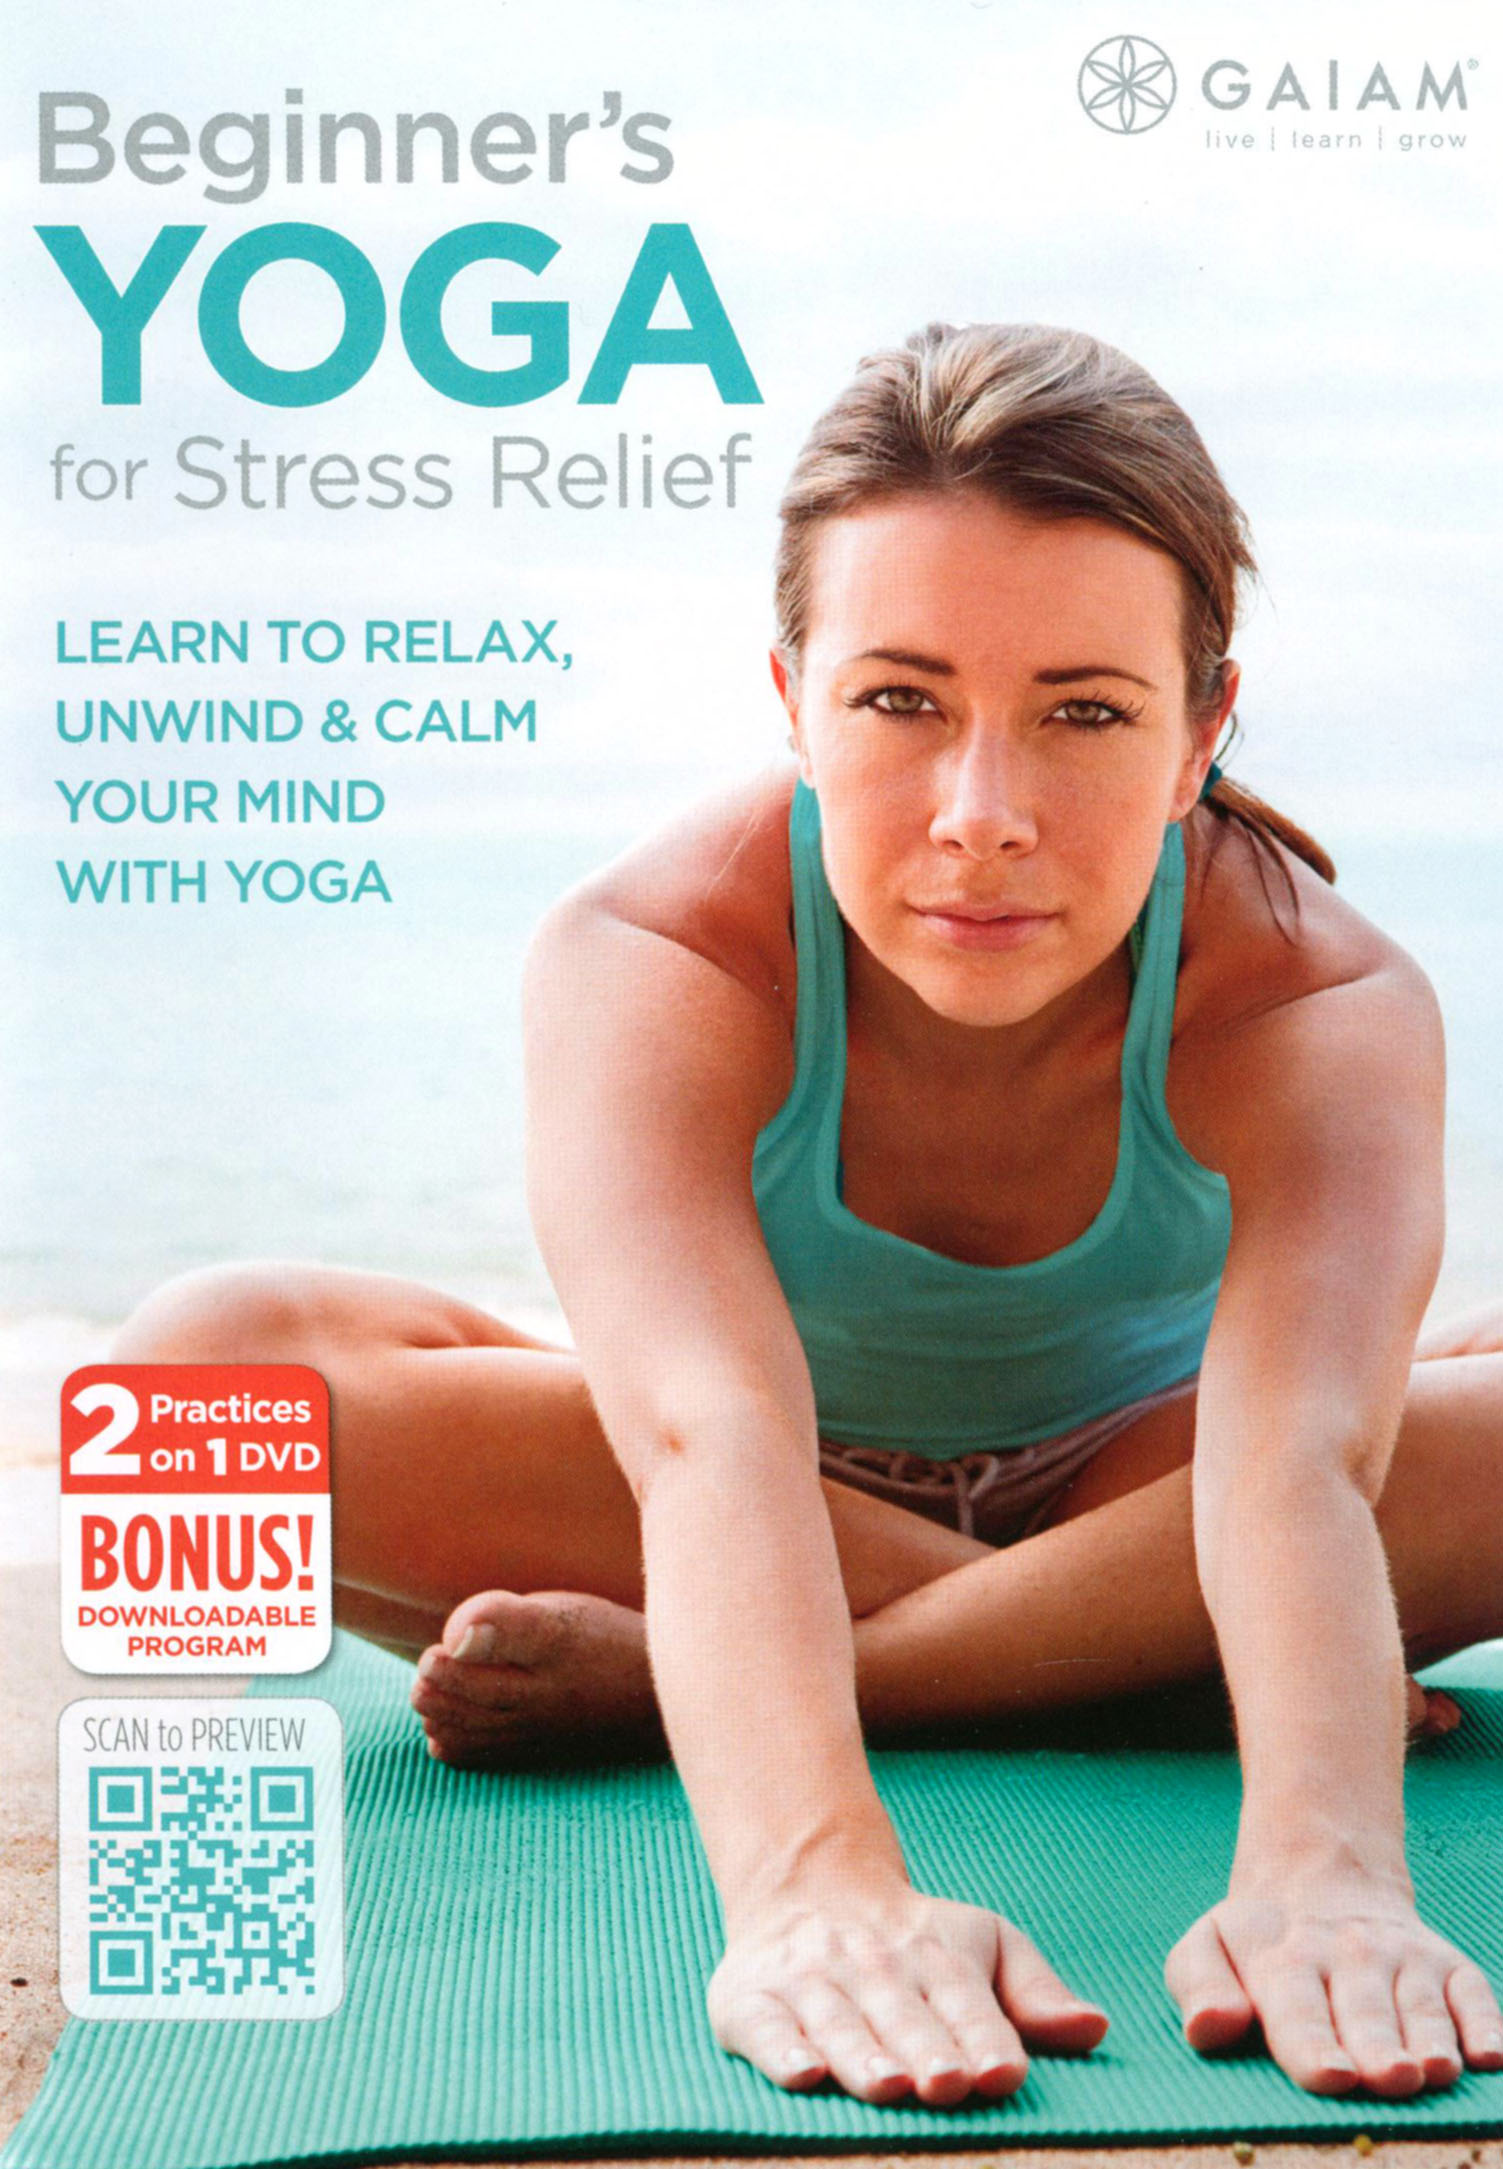 Beginner's Yoga for Stress Relief